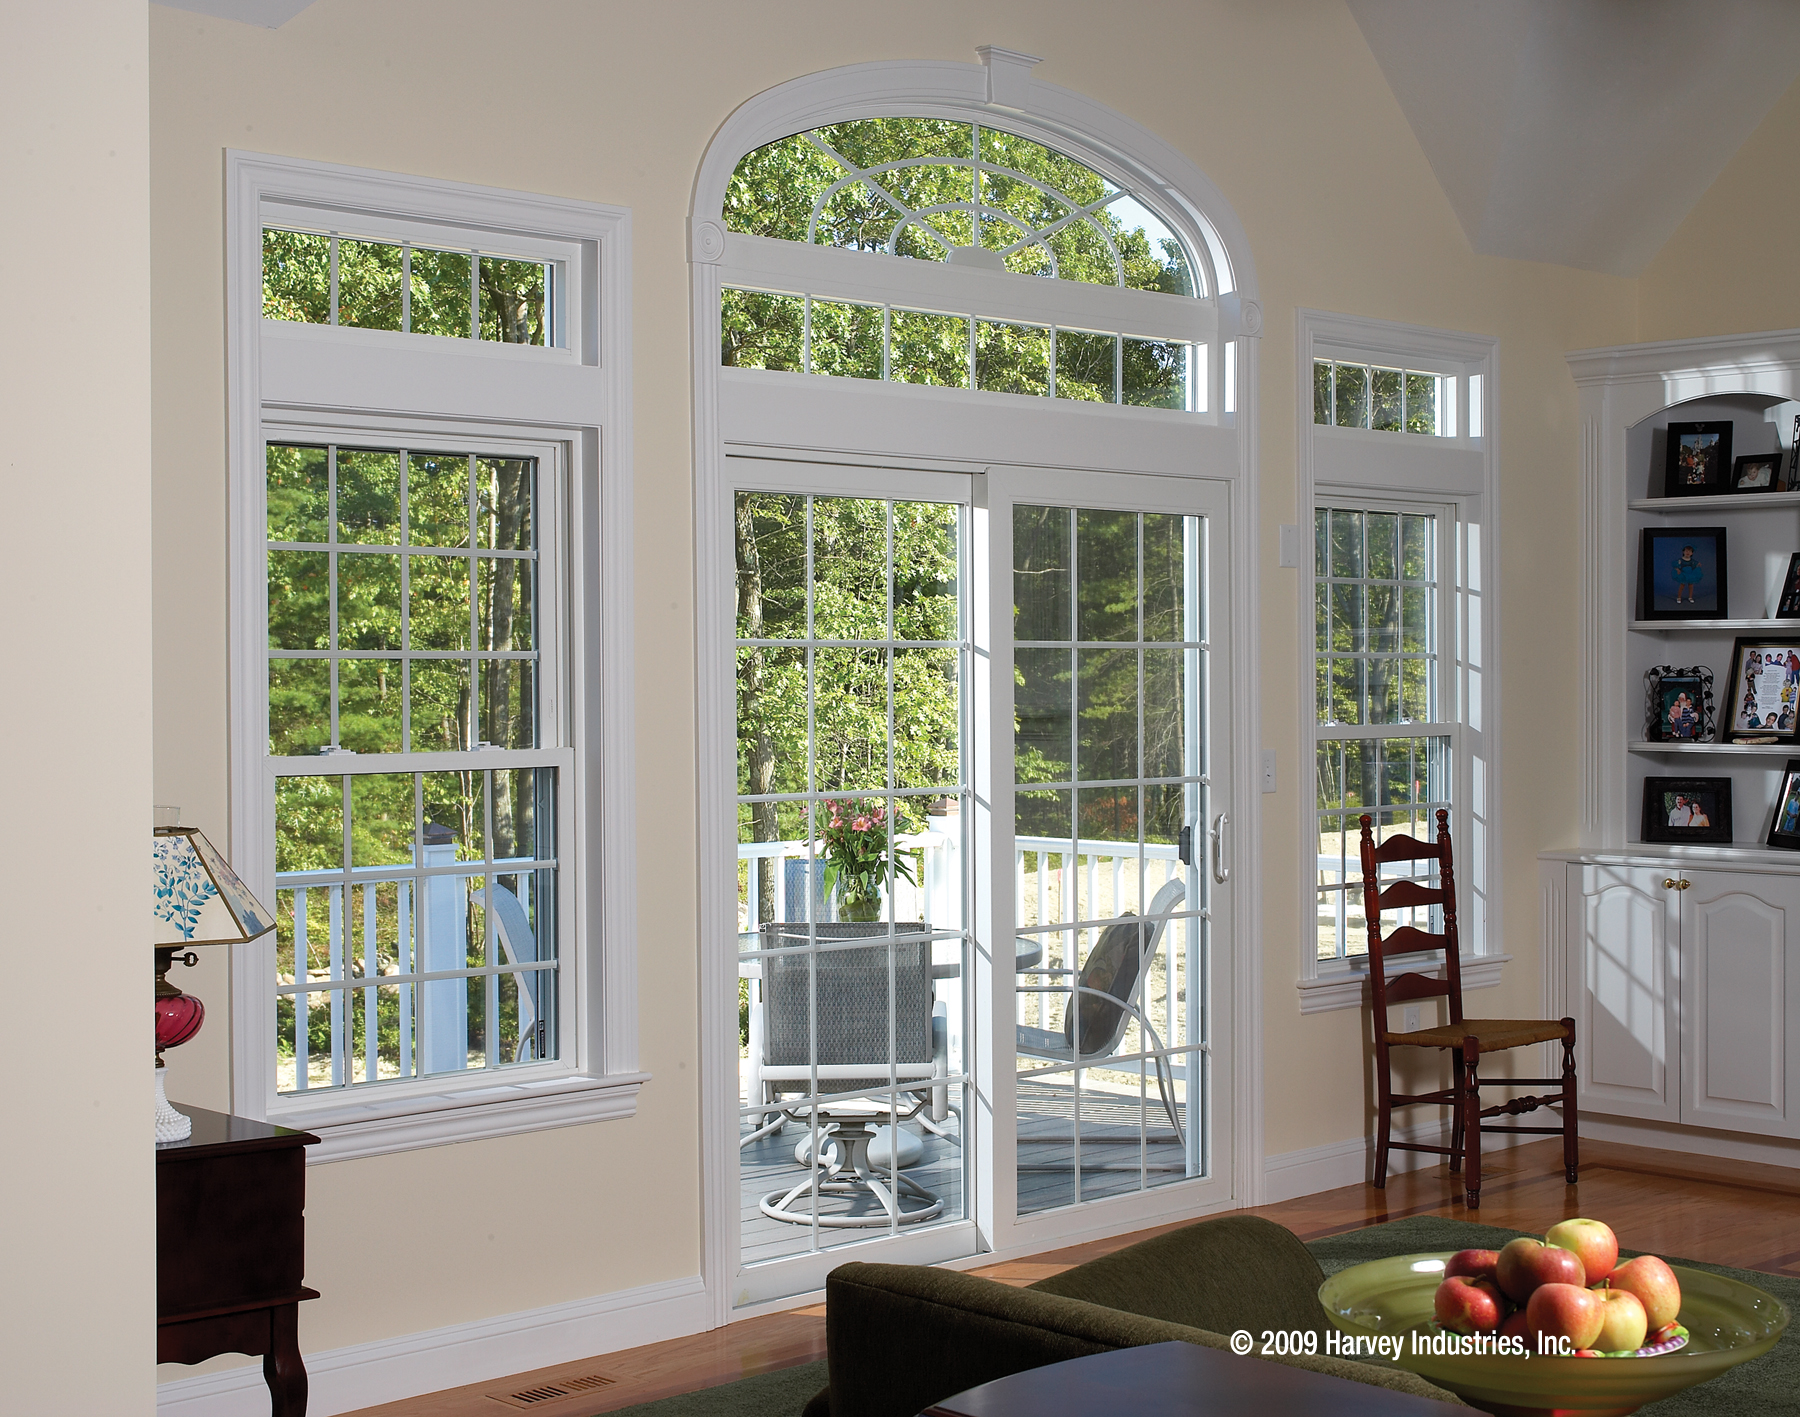 Combine double hung windows with patio doors to create that unique look